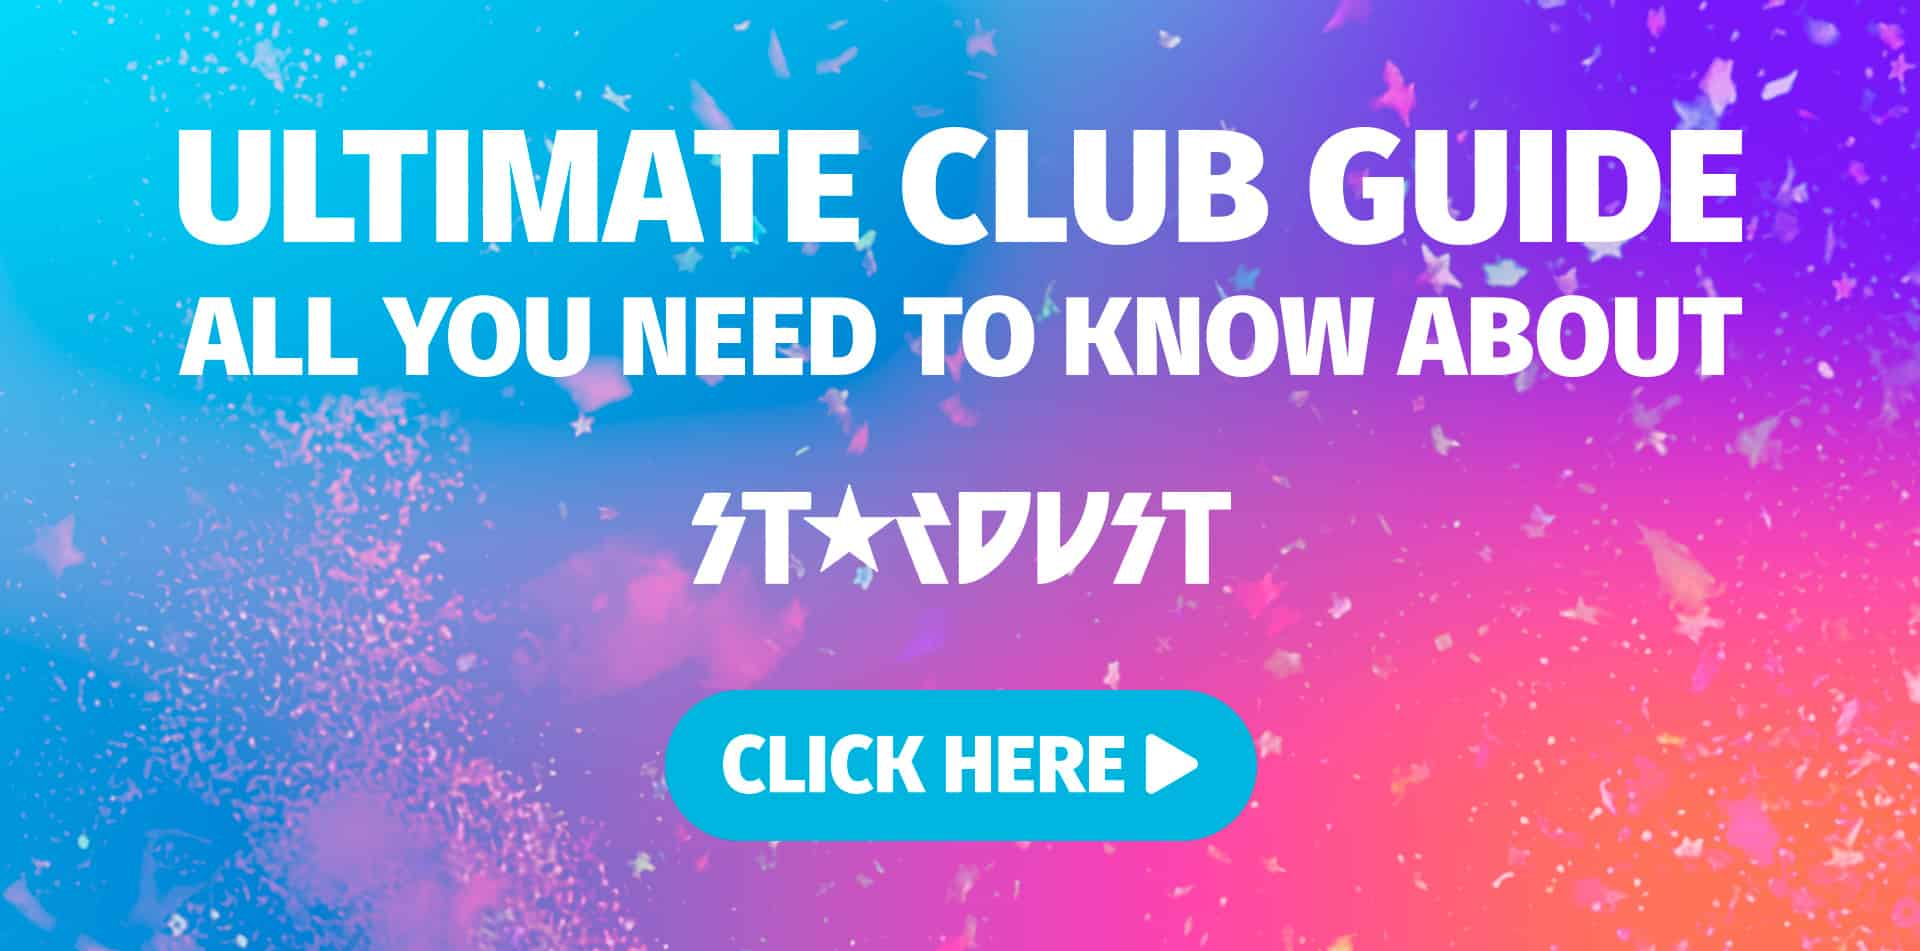 Ultimate Club Guide - Stardust Madrid